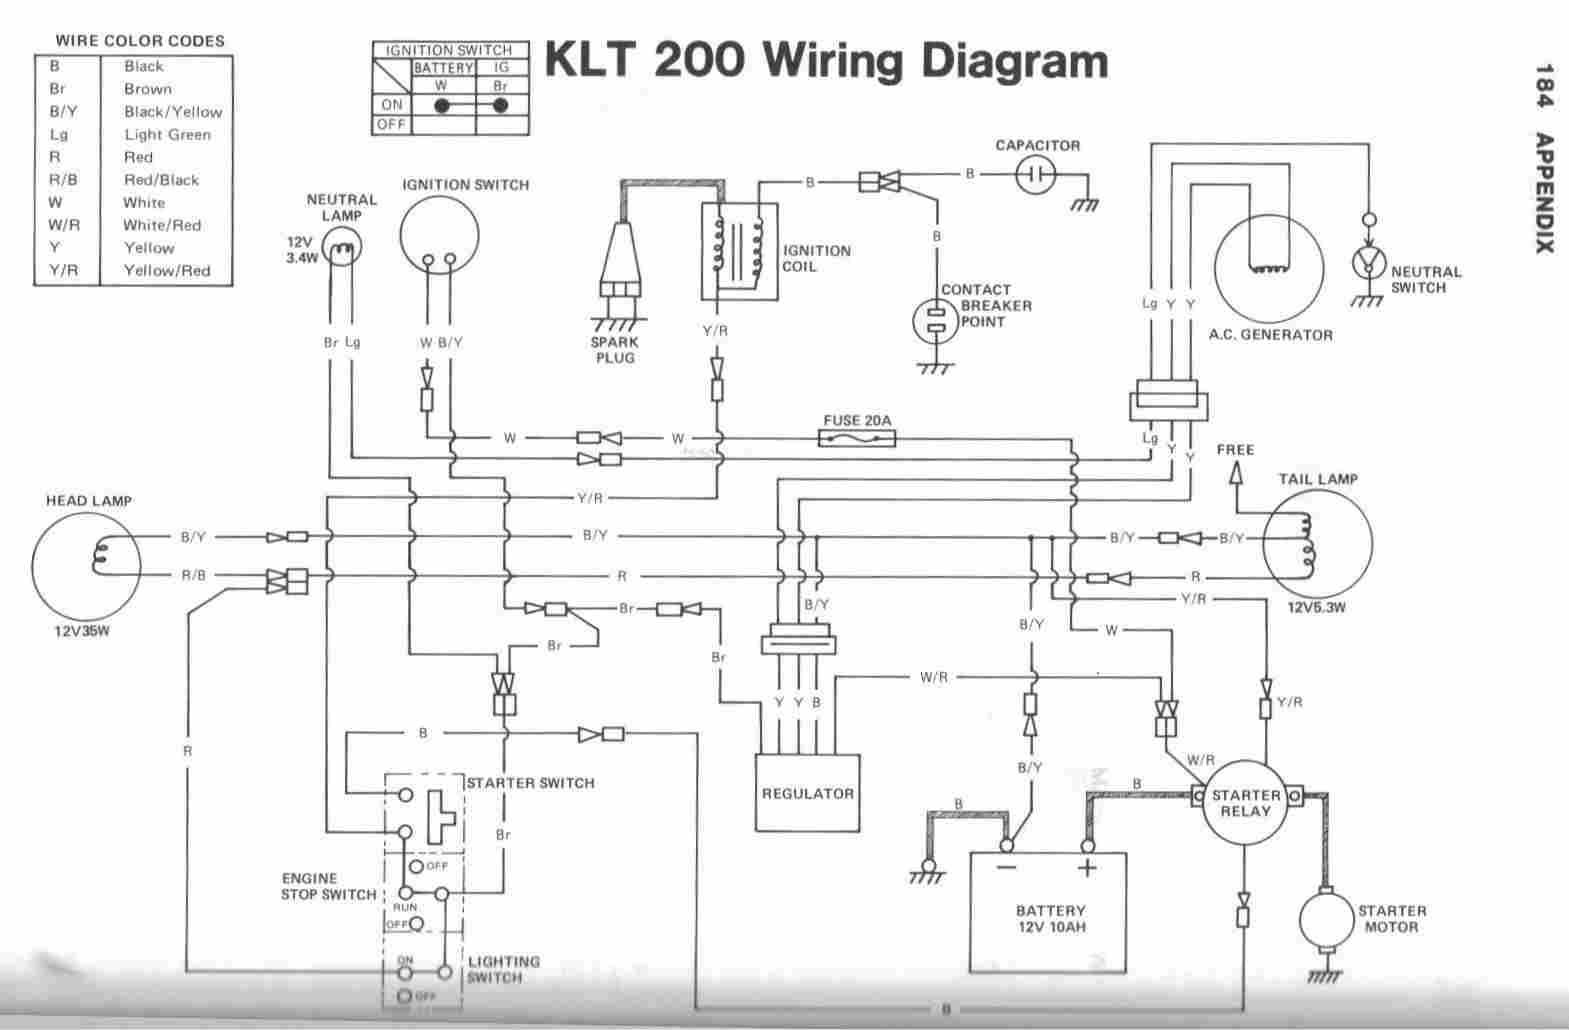 electrical wiring blueprint pdf example electrical wiring diagram u2022 rh huntervalleyhotels co home electrical wiring blueprint and layout pdf House Electrical Wiring Diagrams